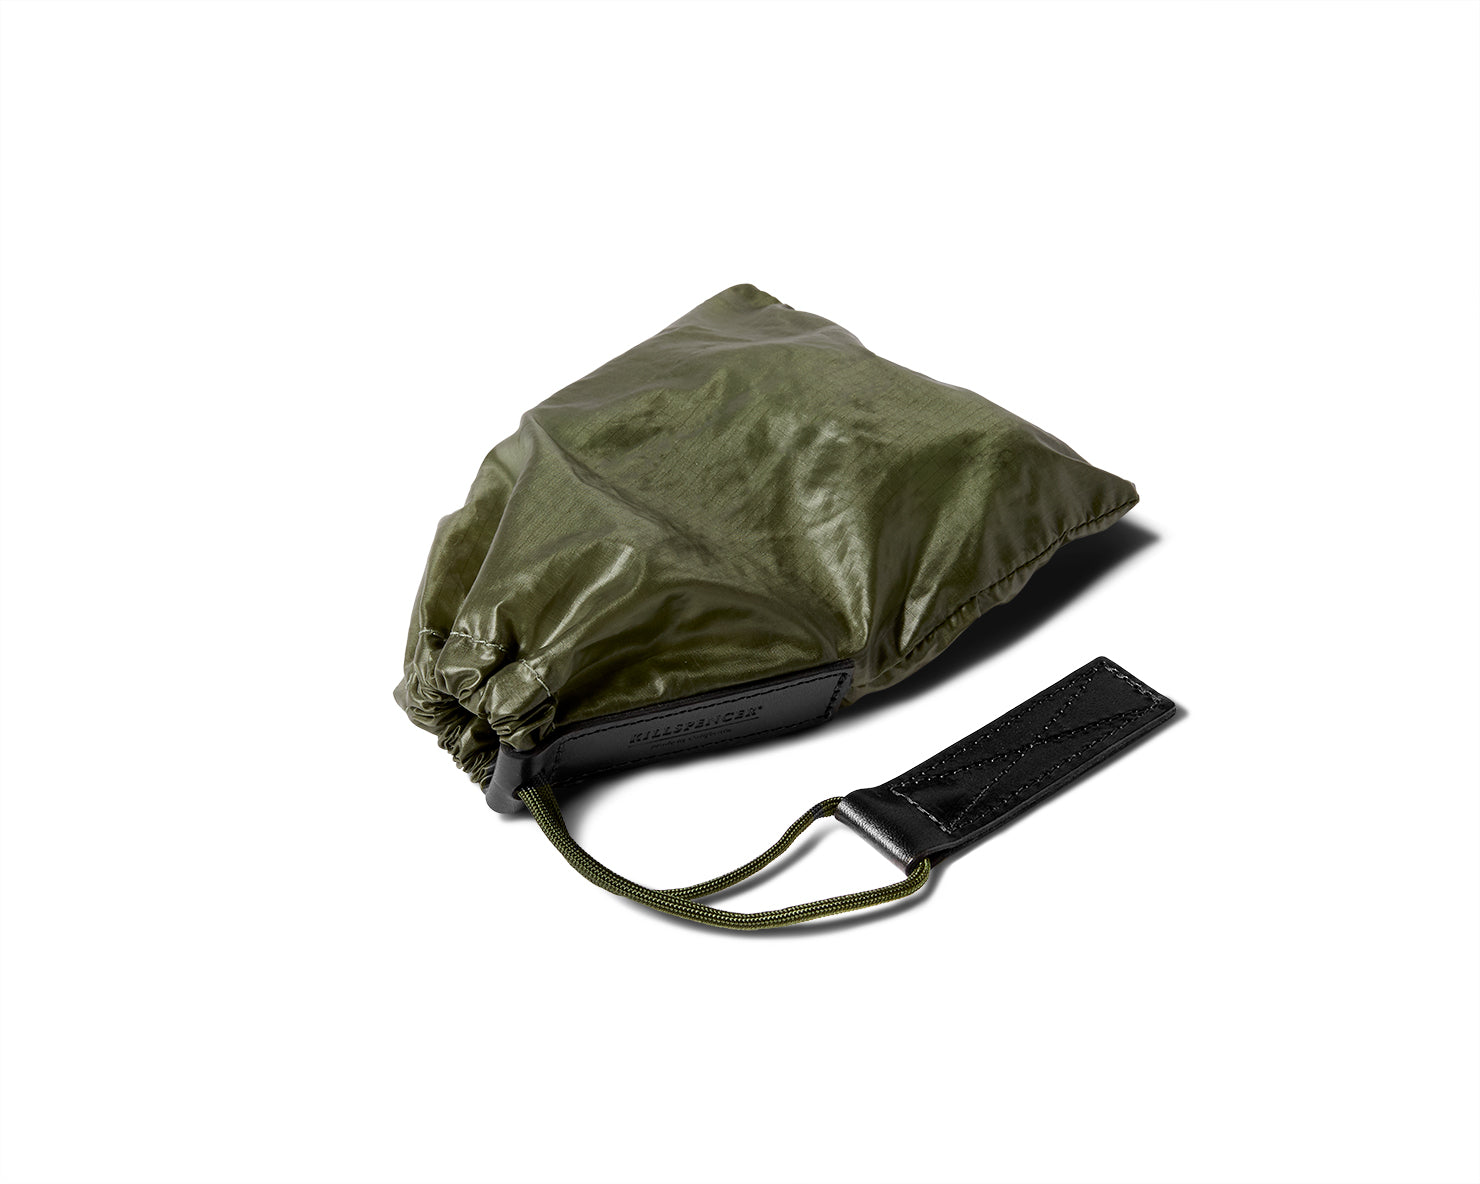 PARACHUTE BAG 2.0 - Small Accessory Bag | KILLSPENCER® - Olive Drab Parachute